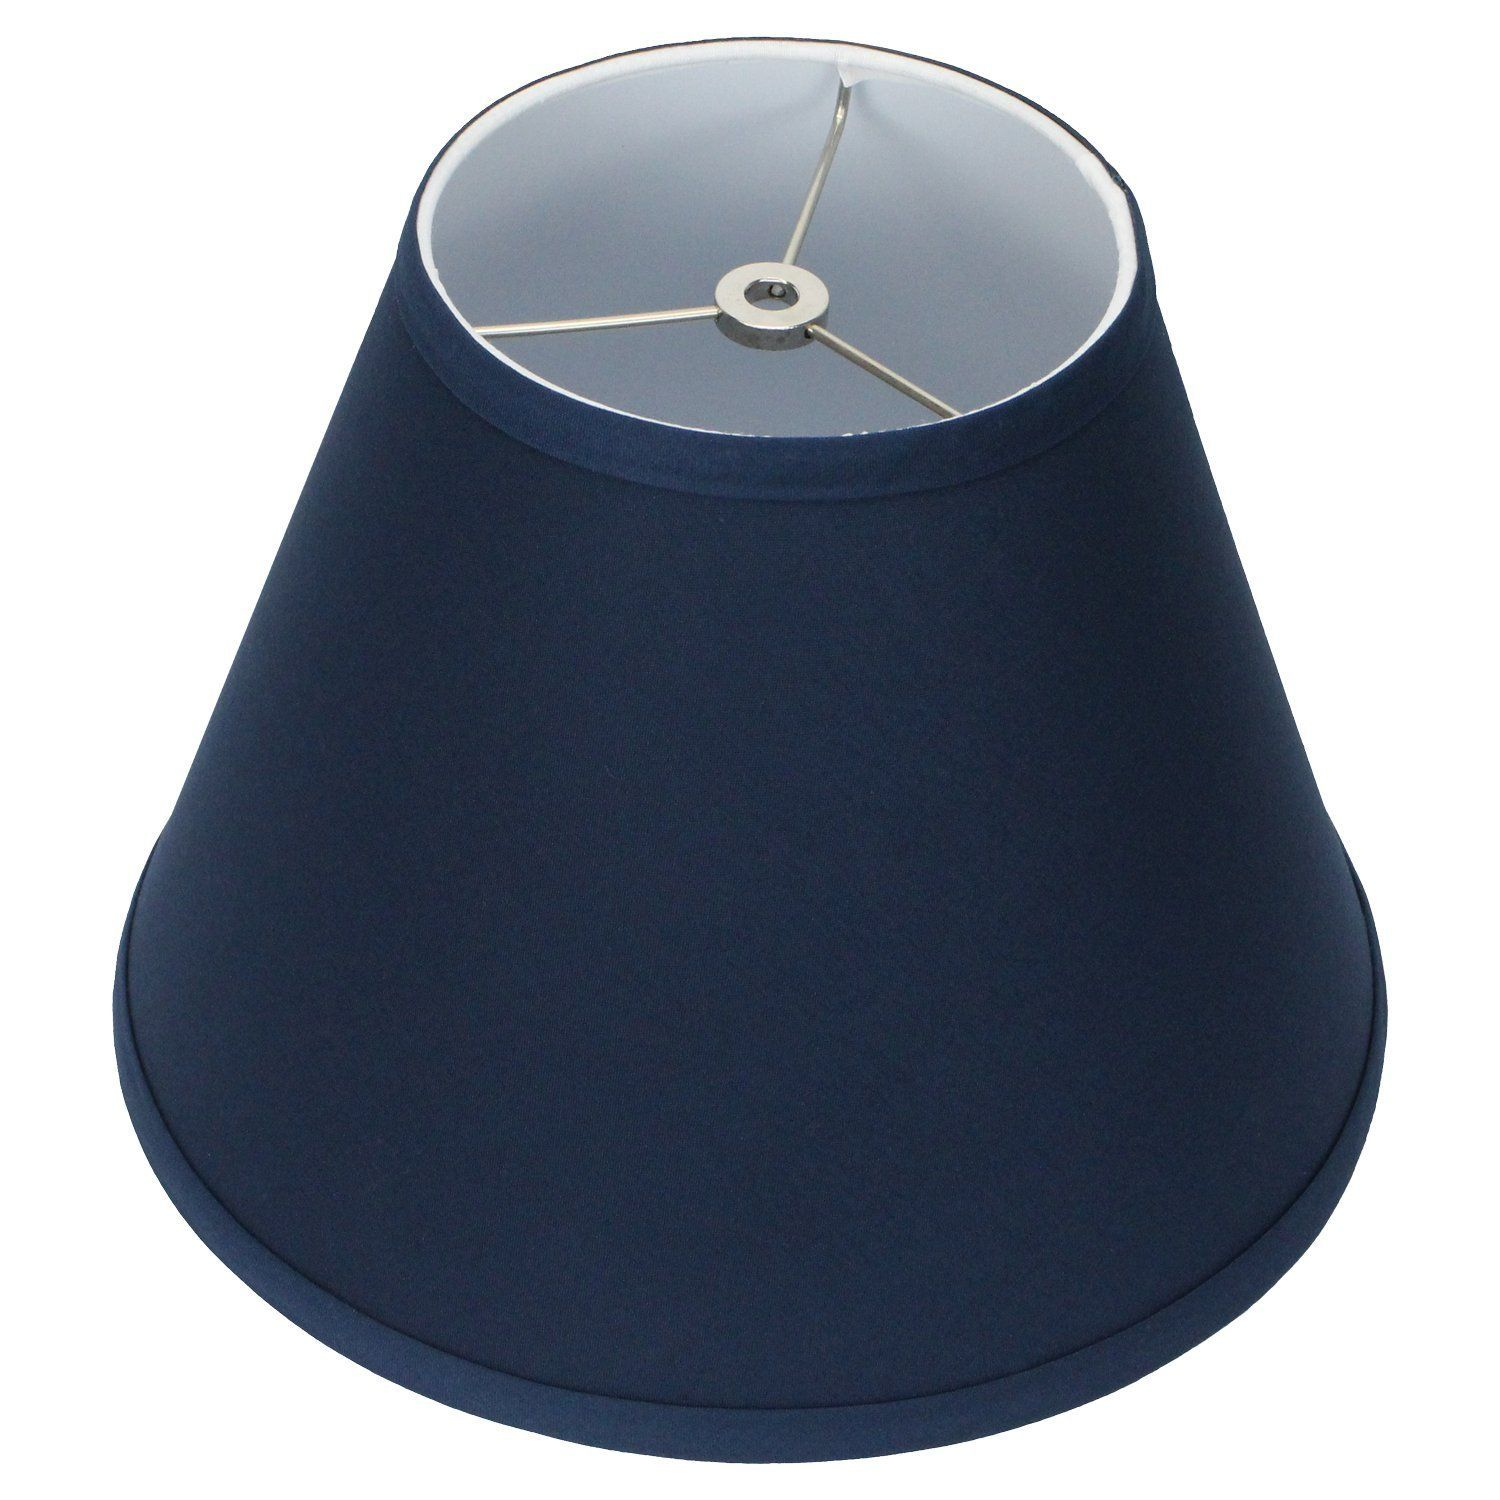 Fenchelshades Com Lampshade 6 Top Diameter X 12 Bottom Diameter X 9 Slant Height With Washer Spider Attachment For Lamps With A Harp Navy Lamp Harp Blue